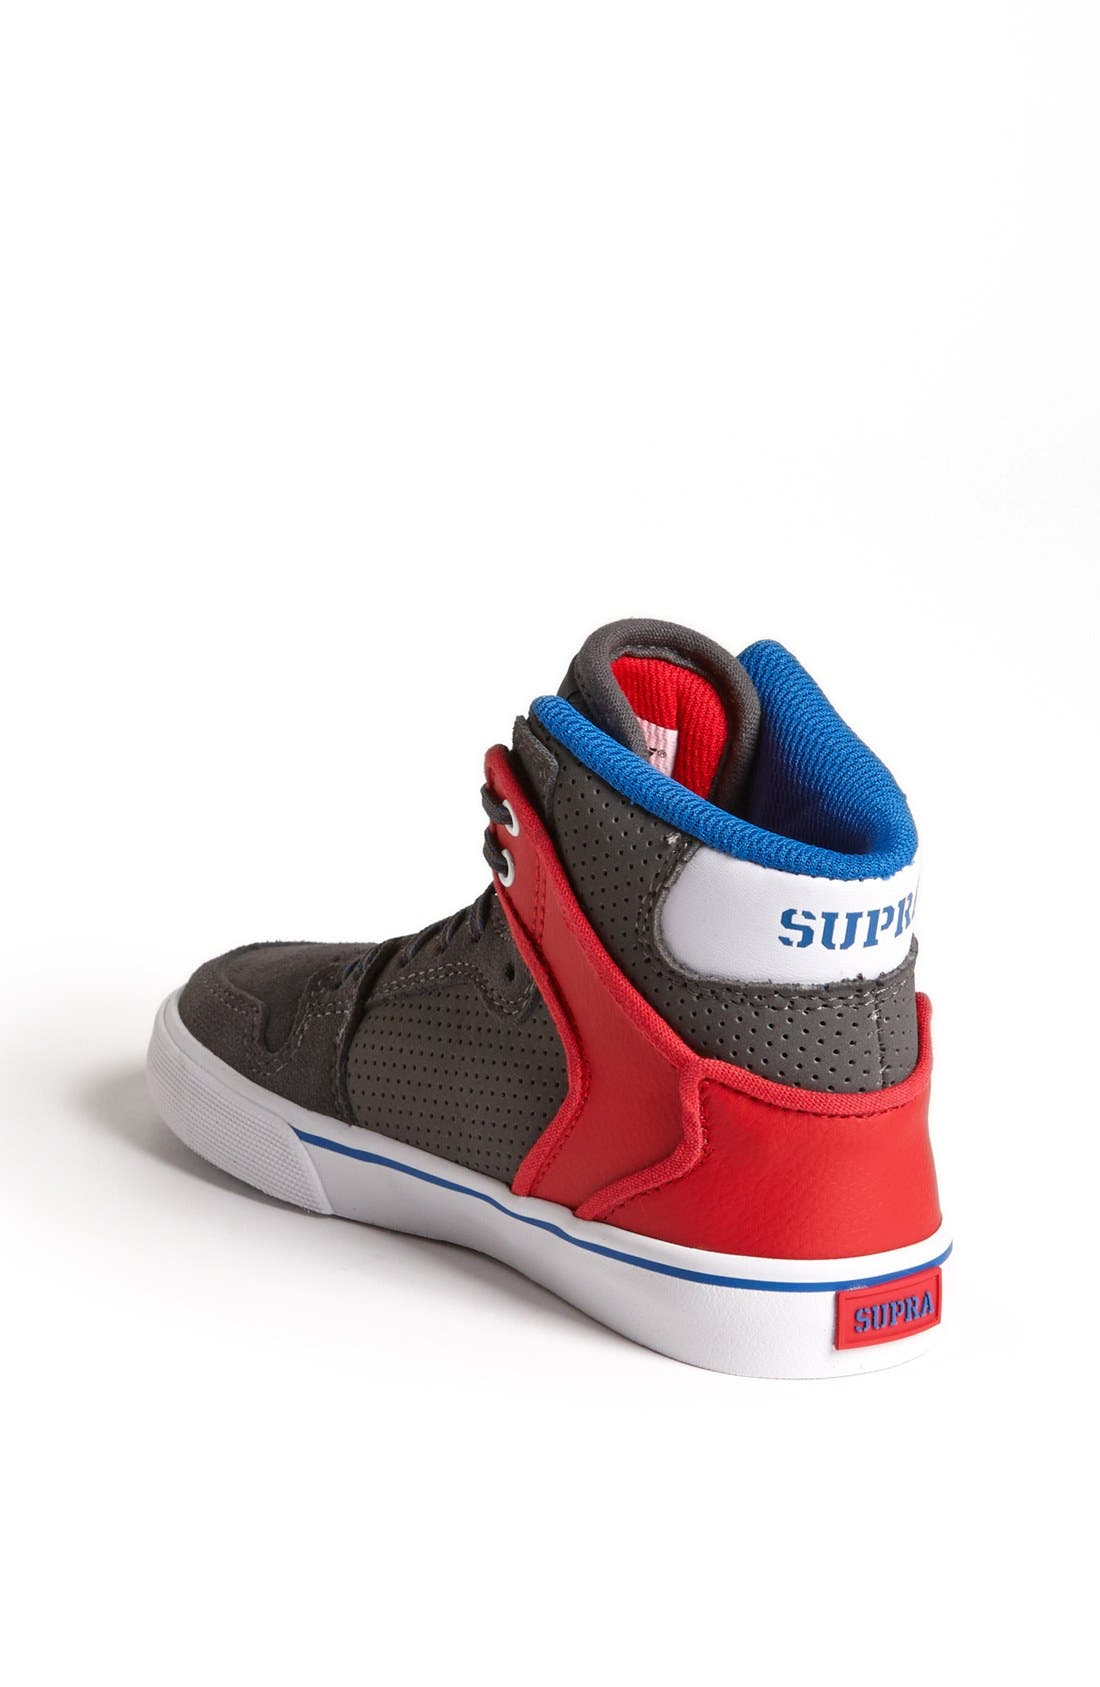 Alternate Image 2  - Supra 'Vaider' Sneaker (Toddler, Little Kid & Big Kid)